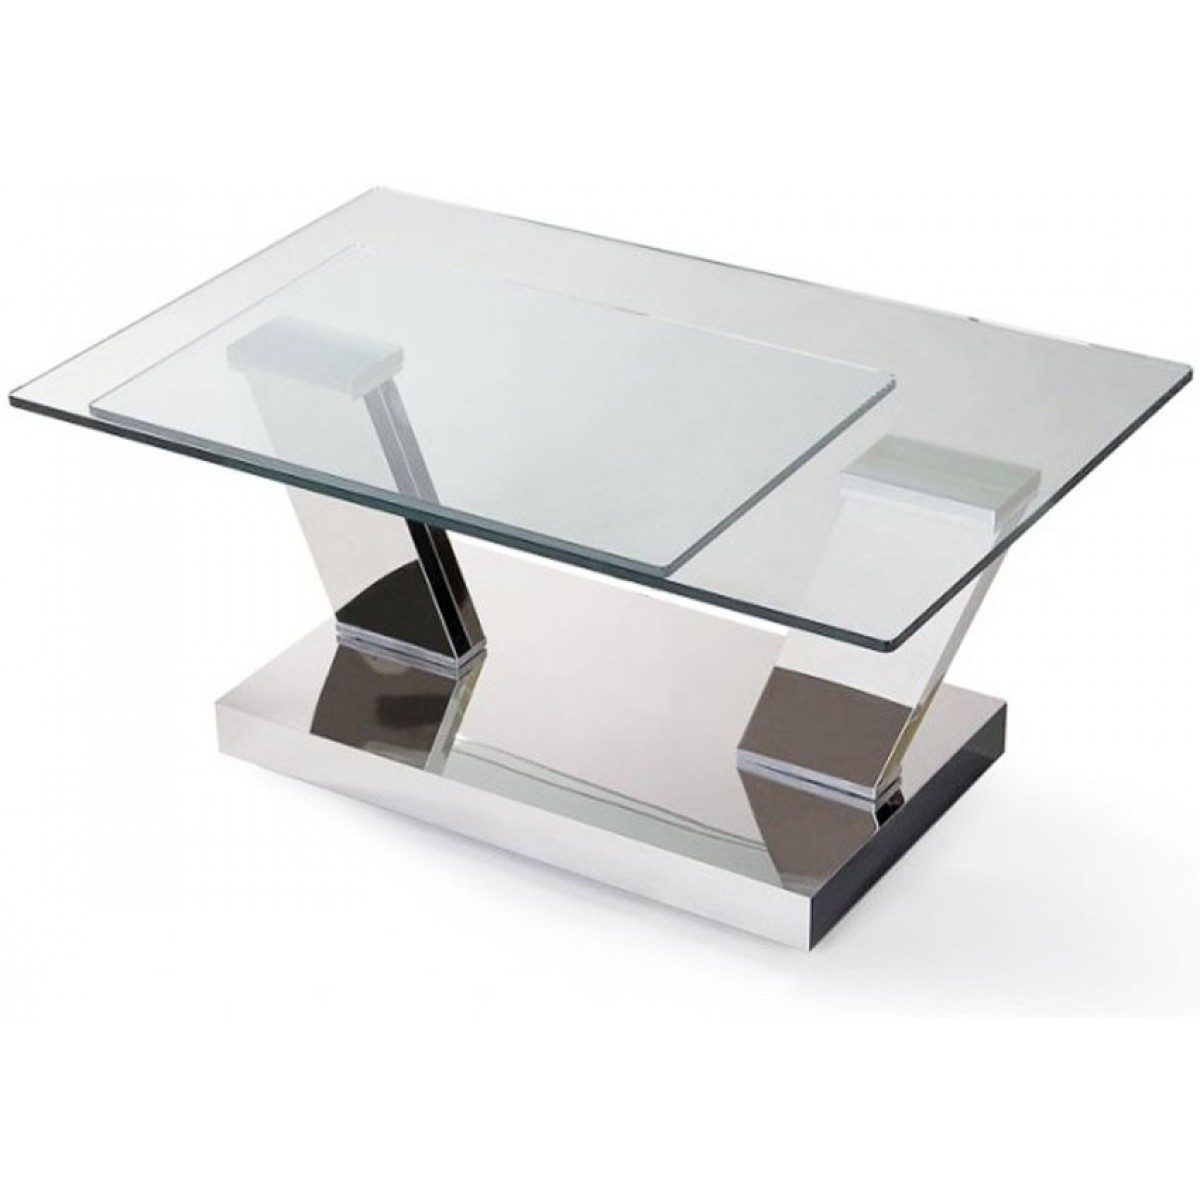 Table basse double plateaux transparents carr s chrom s briega pop - Table basse en plexi ...